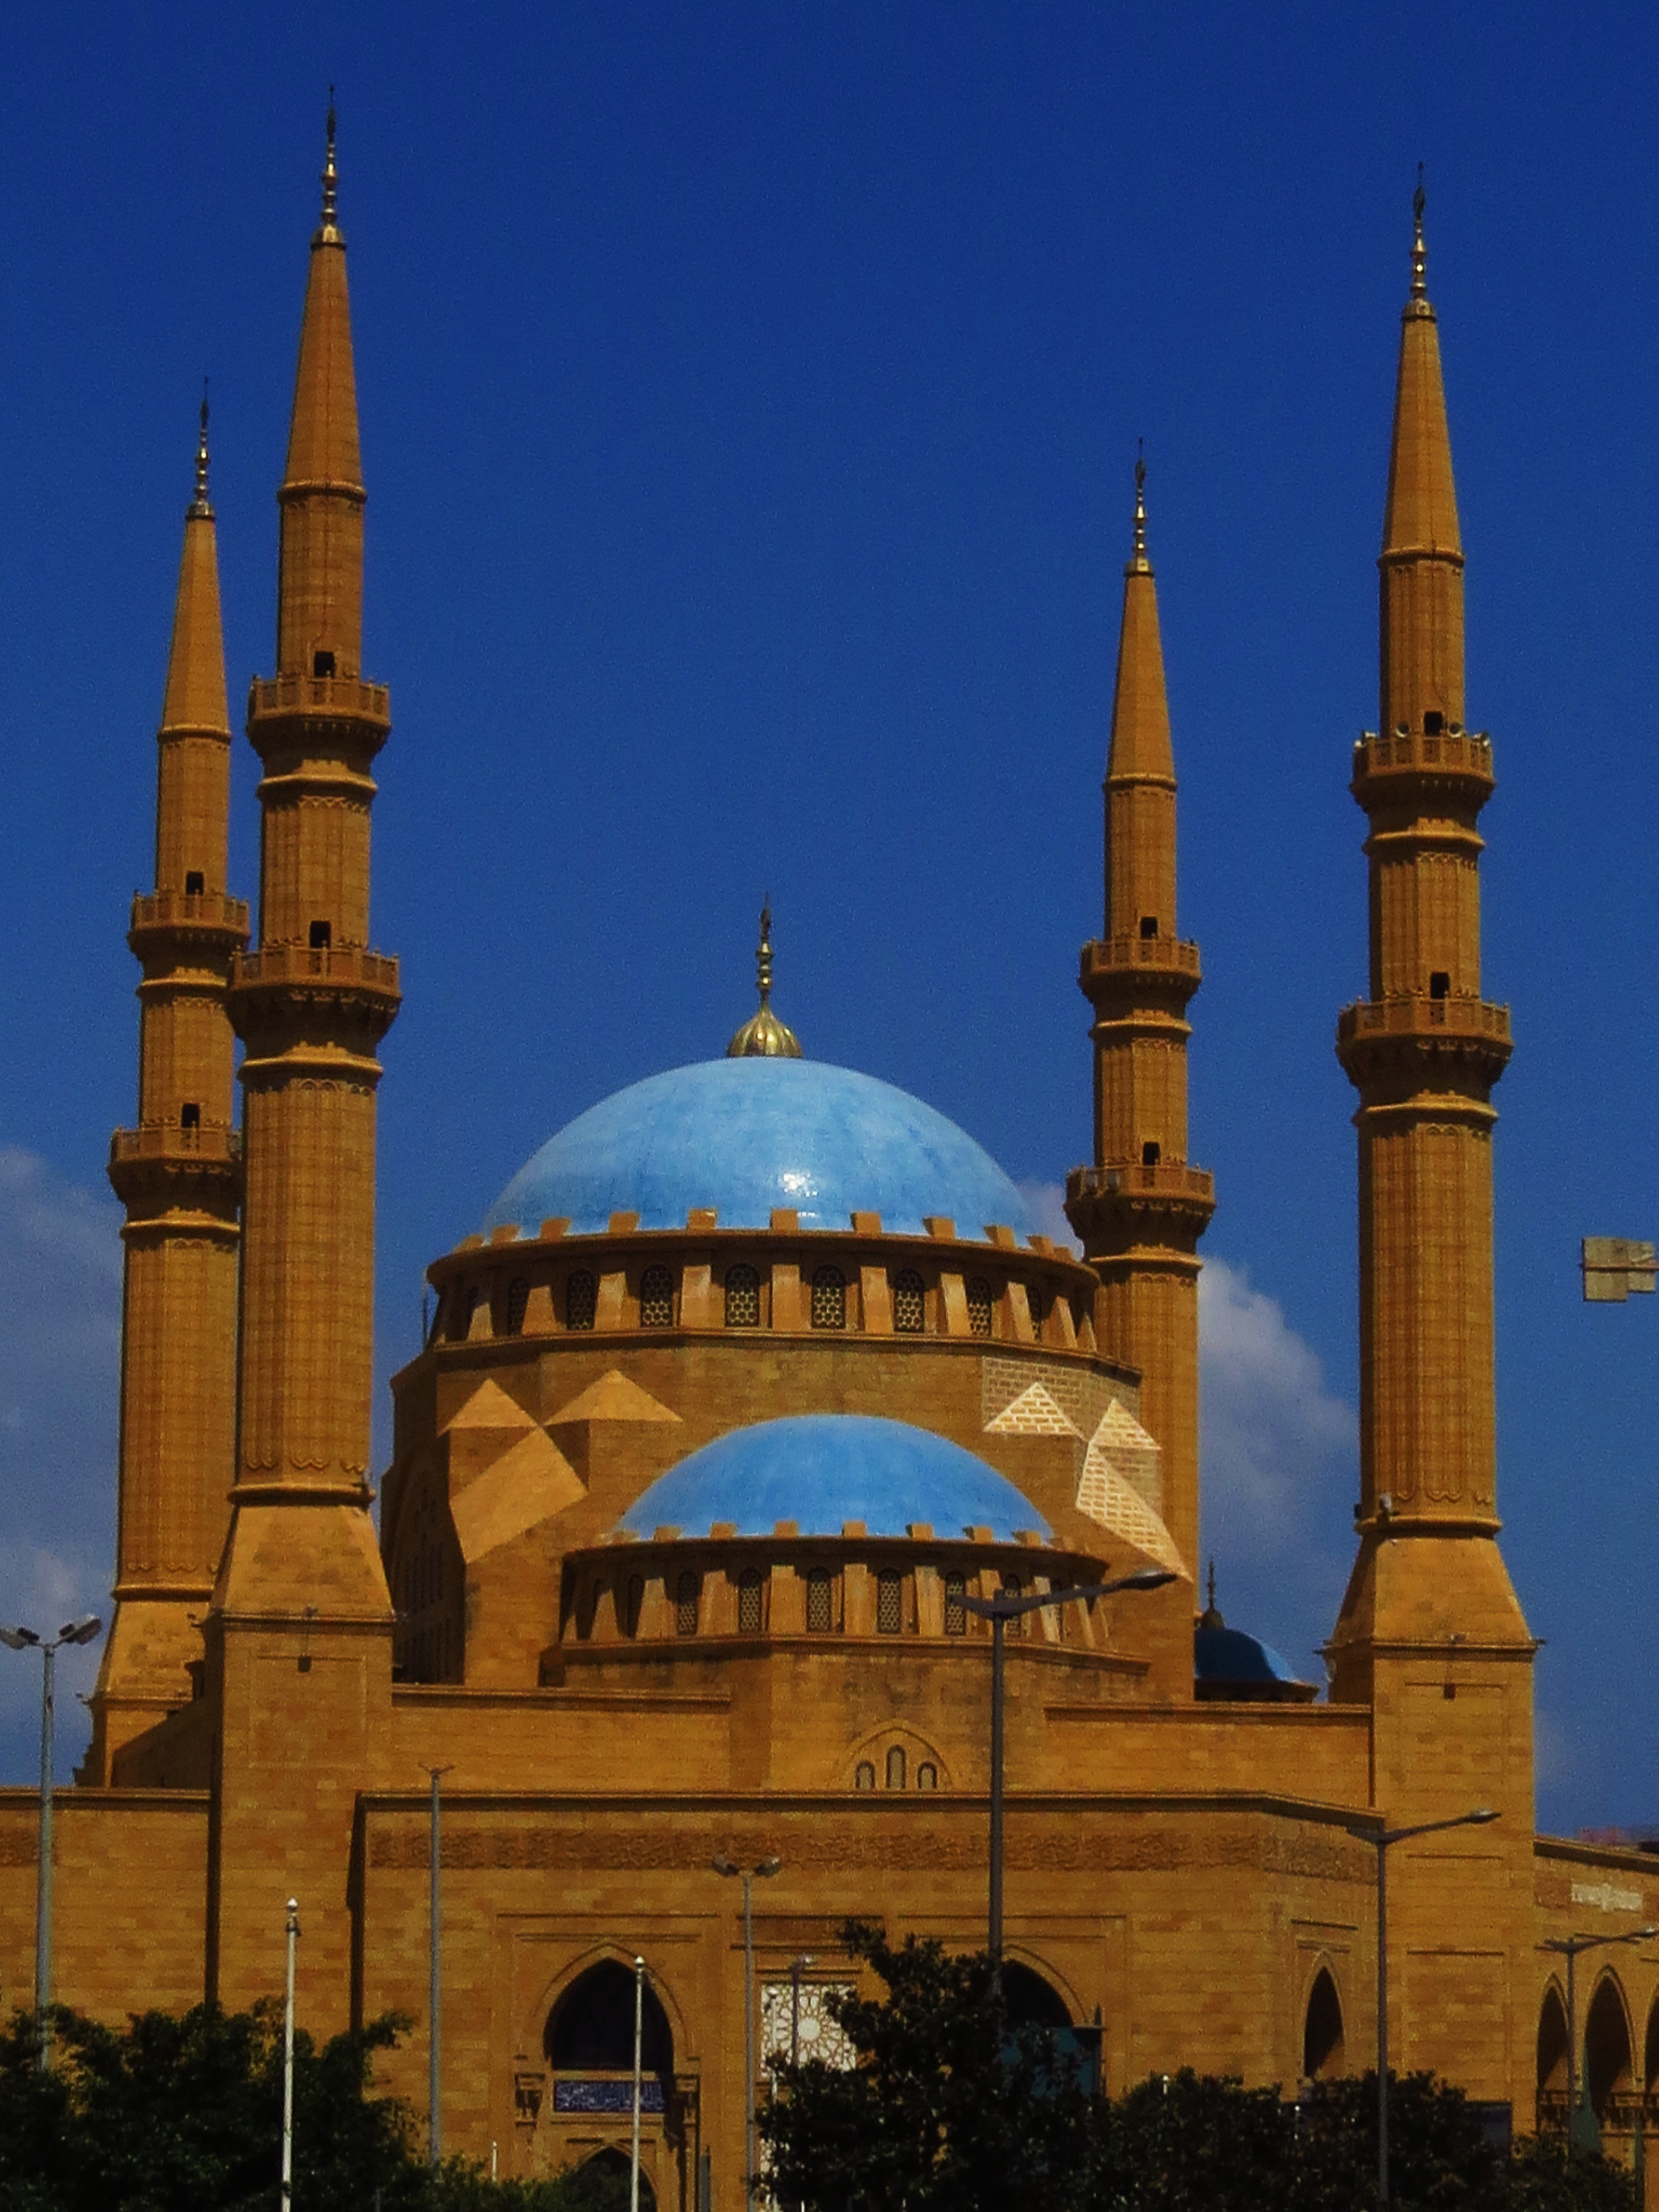 Mohammed Al Amin Mosque Beirut, BEIRUT IMAGES: MOHAMMAD AL-AMIN MOSQUE, PT. 2 – TOKIDOKI (NOMAD)